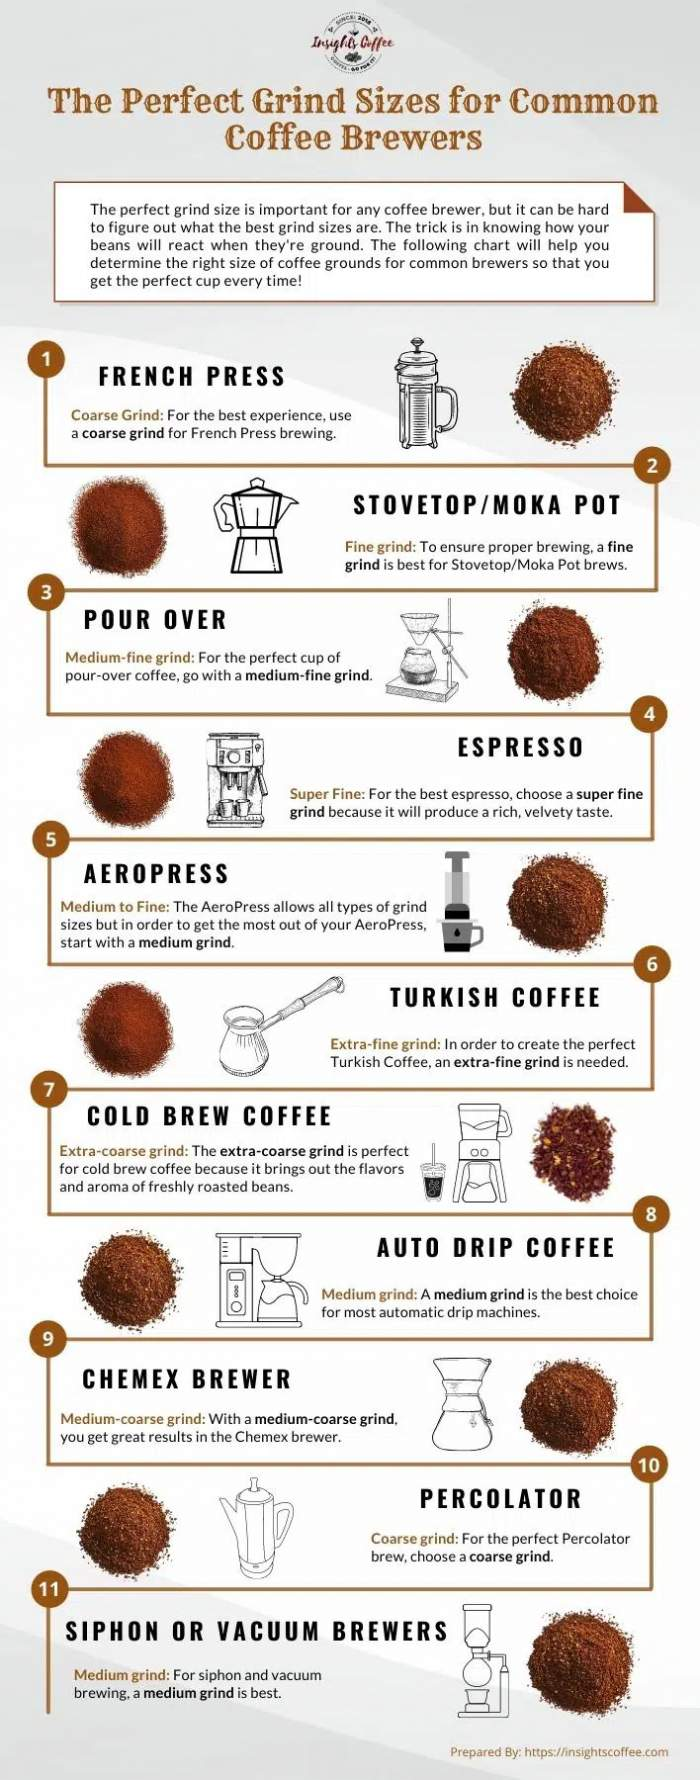 Perfect-Grind-Sizes-For-Common-Coffee-Brewers